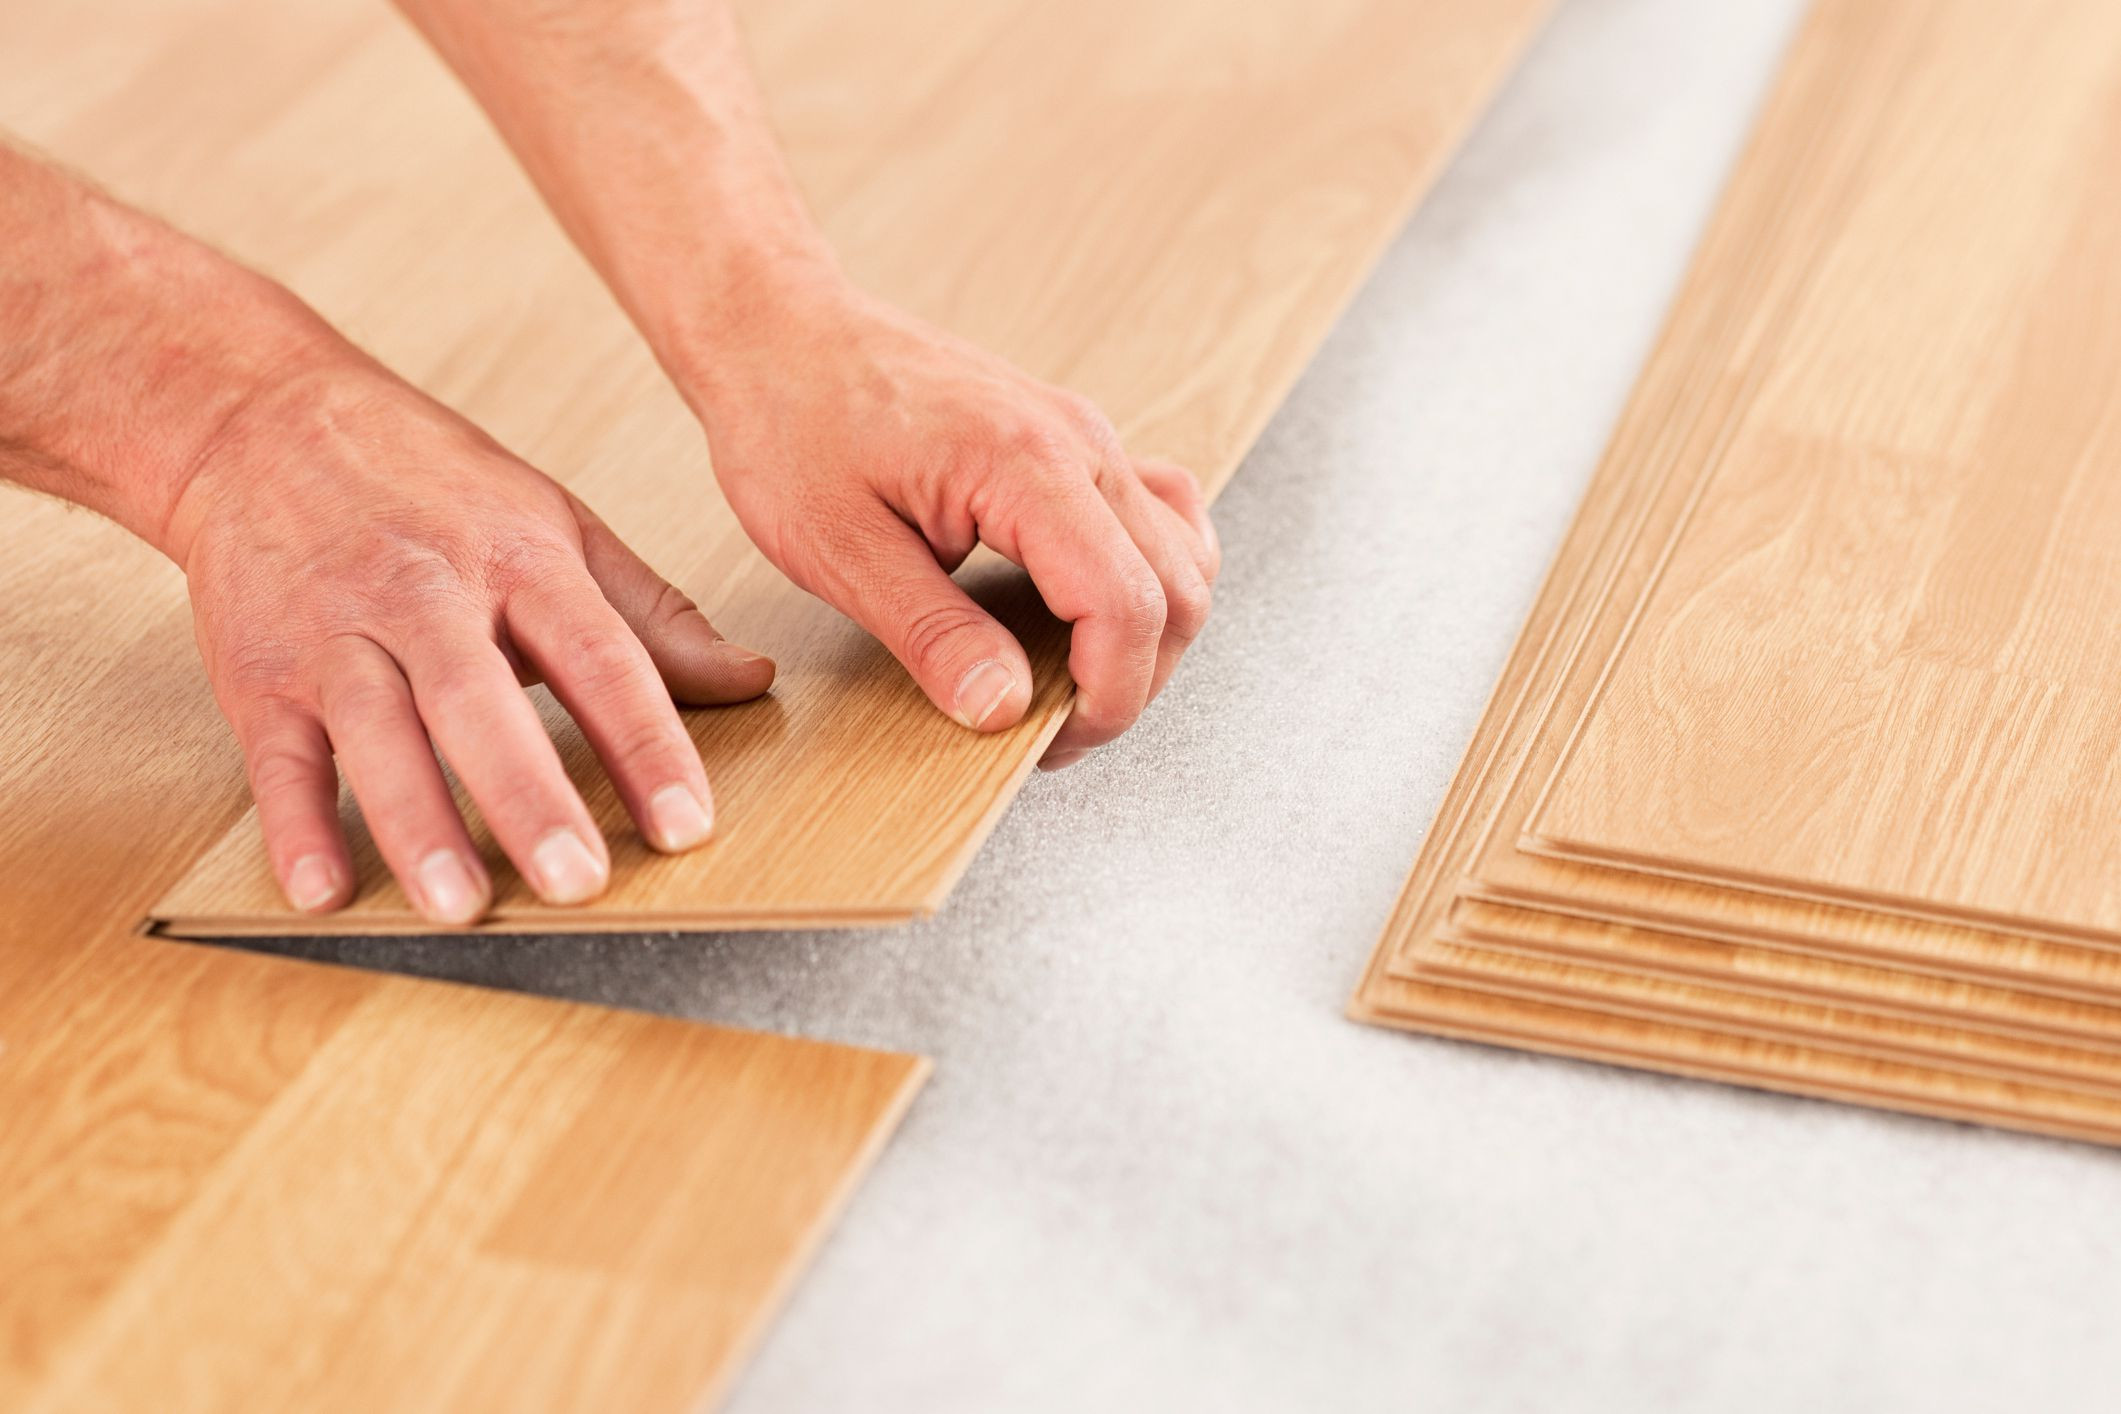 clearance engineered hardwood flooring of laminate underlayment pros and cons pertaining to laminate floor install gettyimages 154961561 588816495f9b58bdb3da1a02